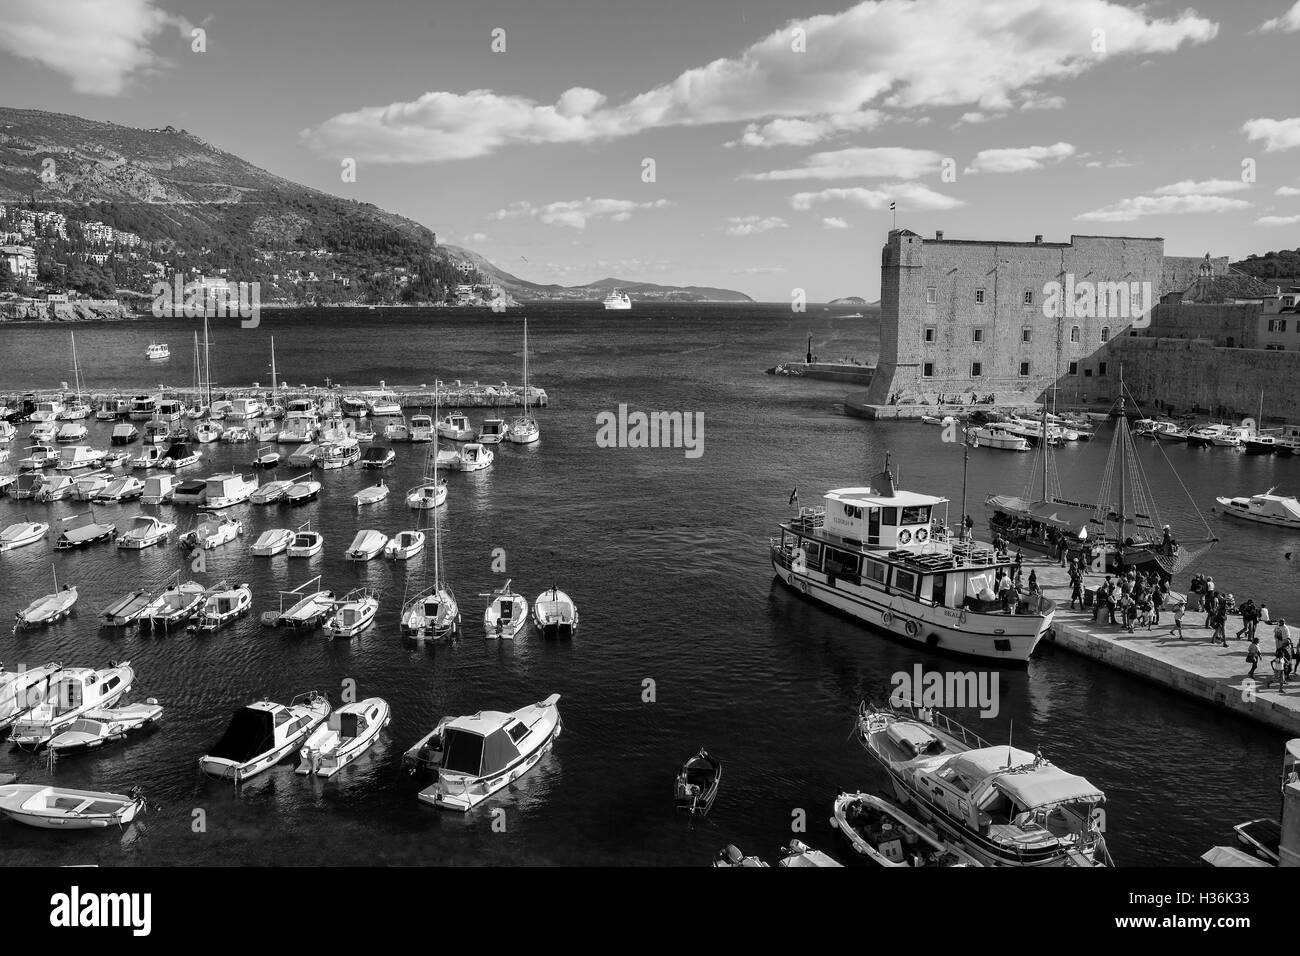 Old Harbour from the Arsenal, Dubrovnik, Croatia, Black and white version. - Stock Image